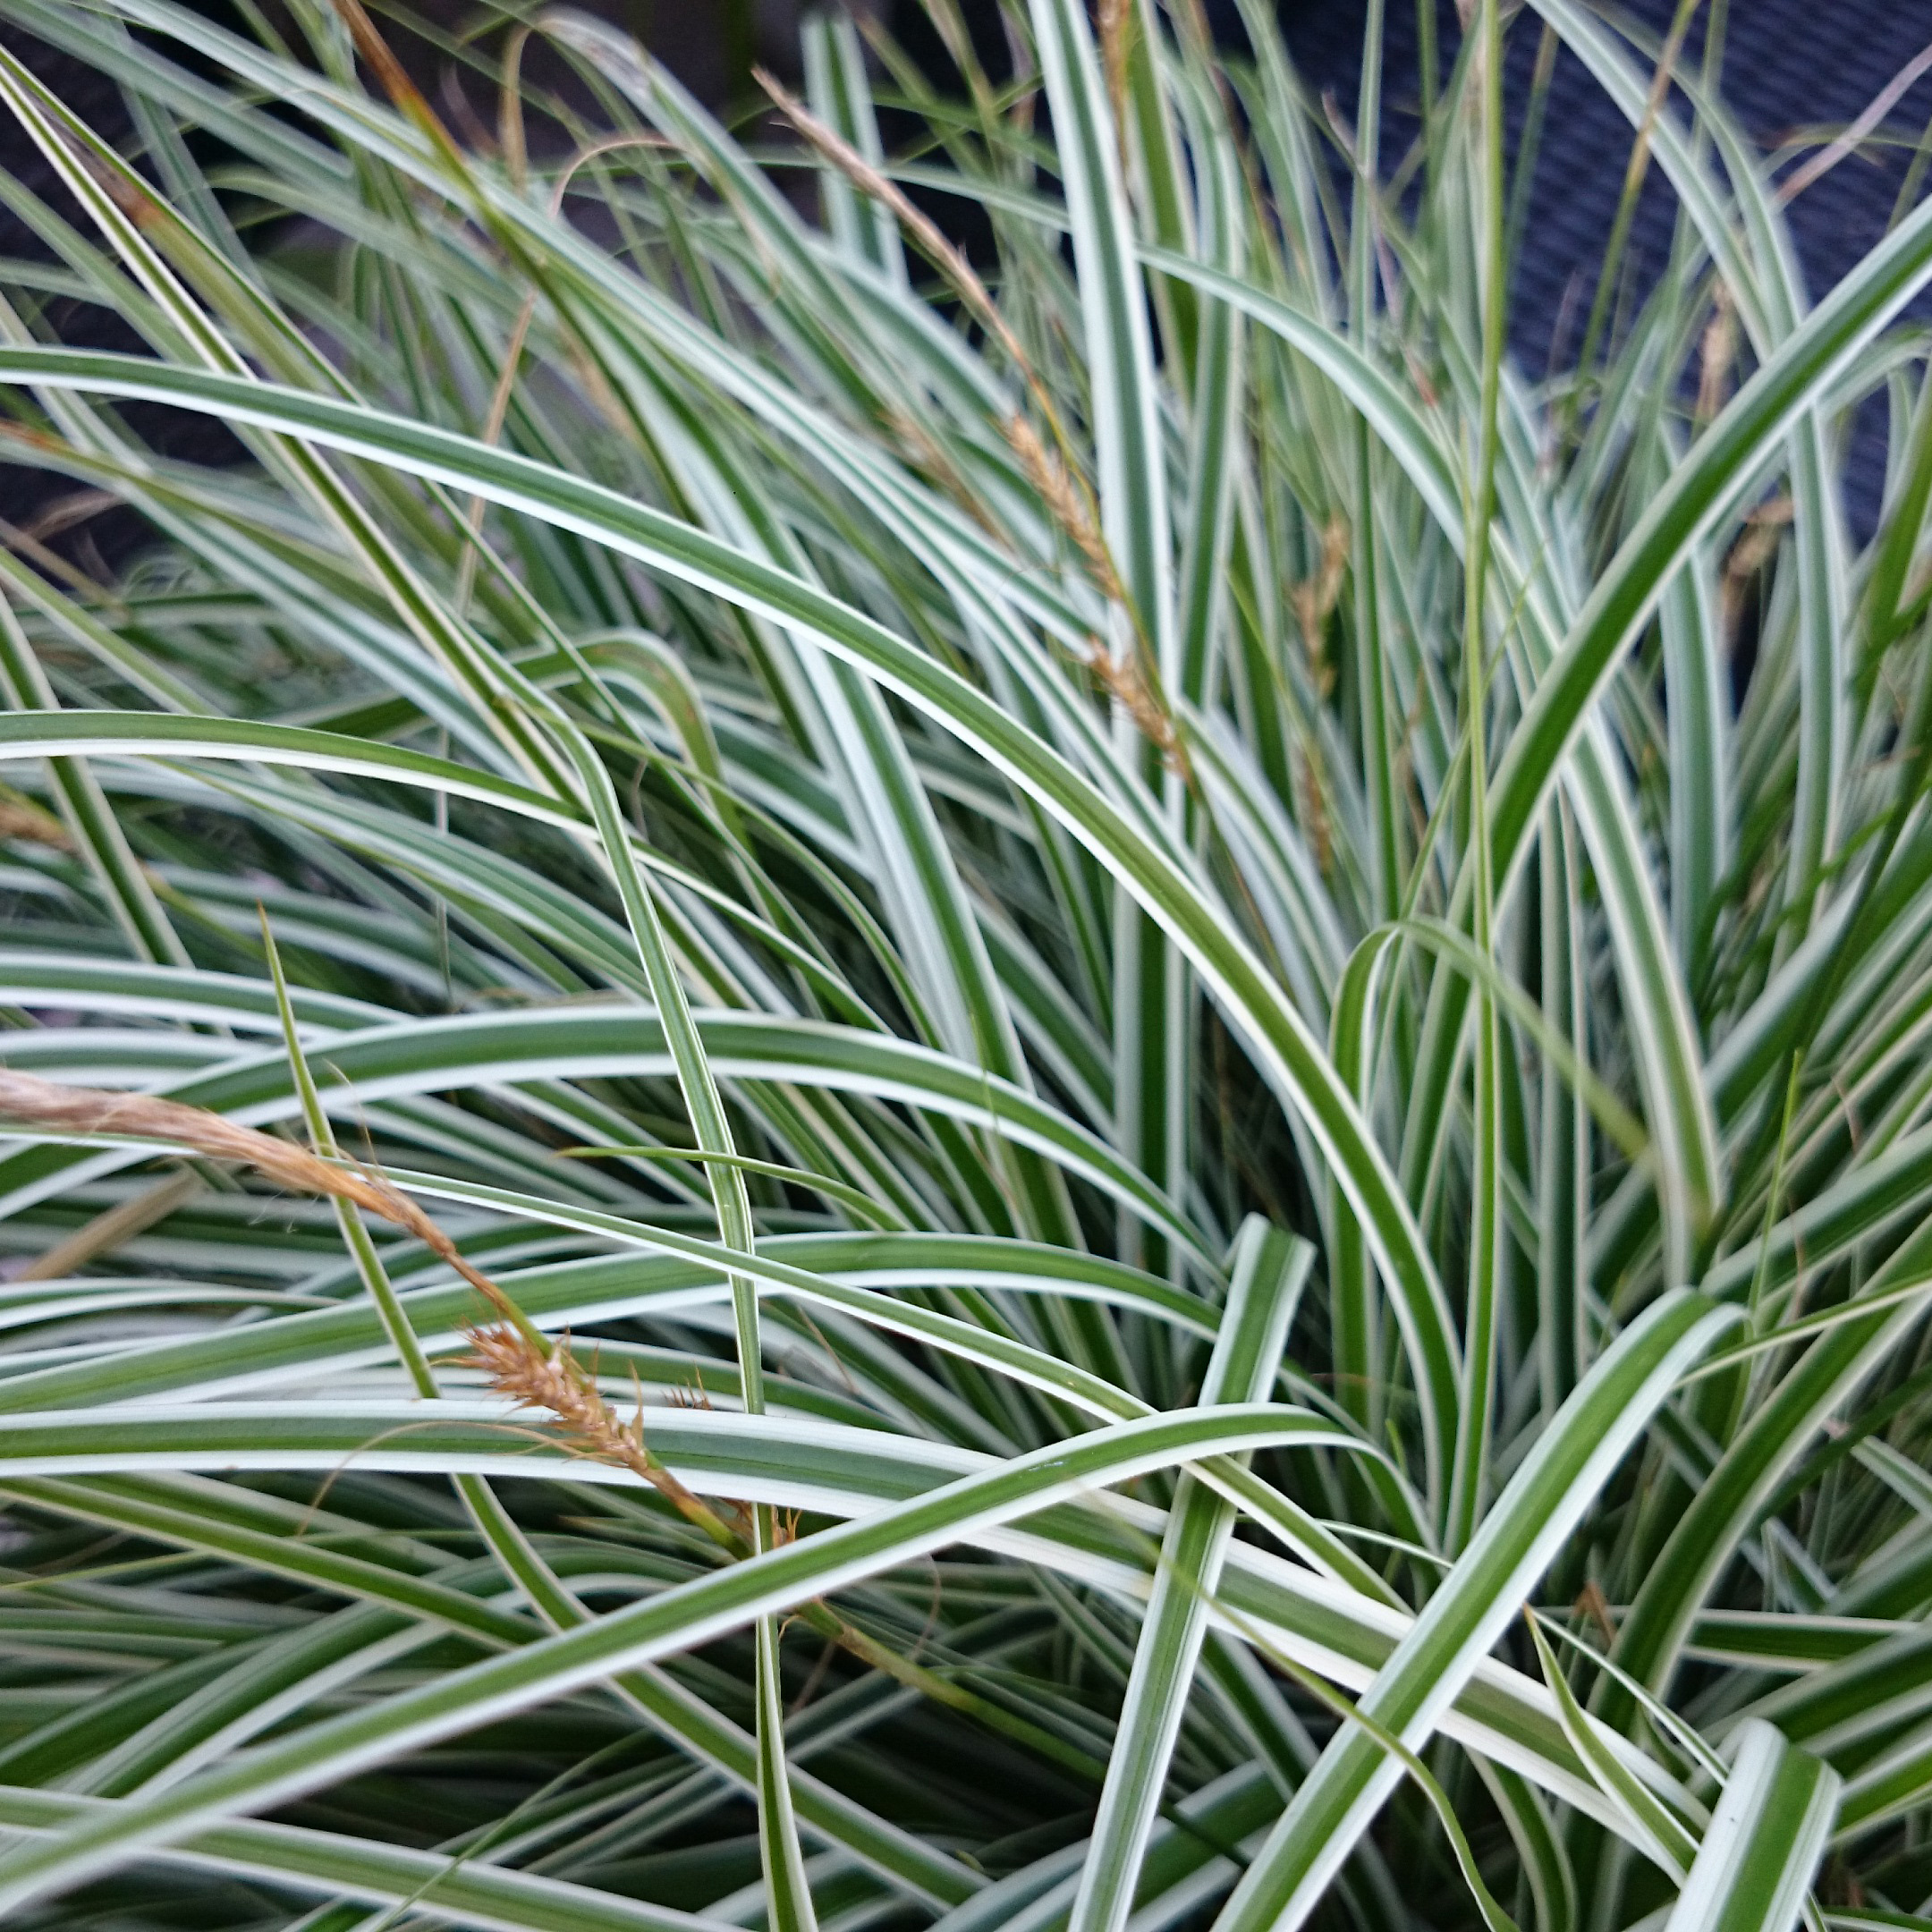 Red Shade Buy Sedge Carex Oshimensis Everest Fiwhite Pbr